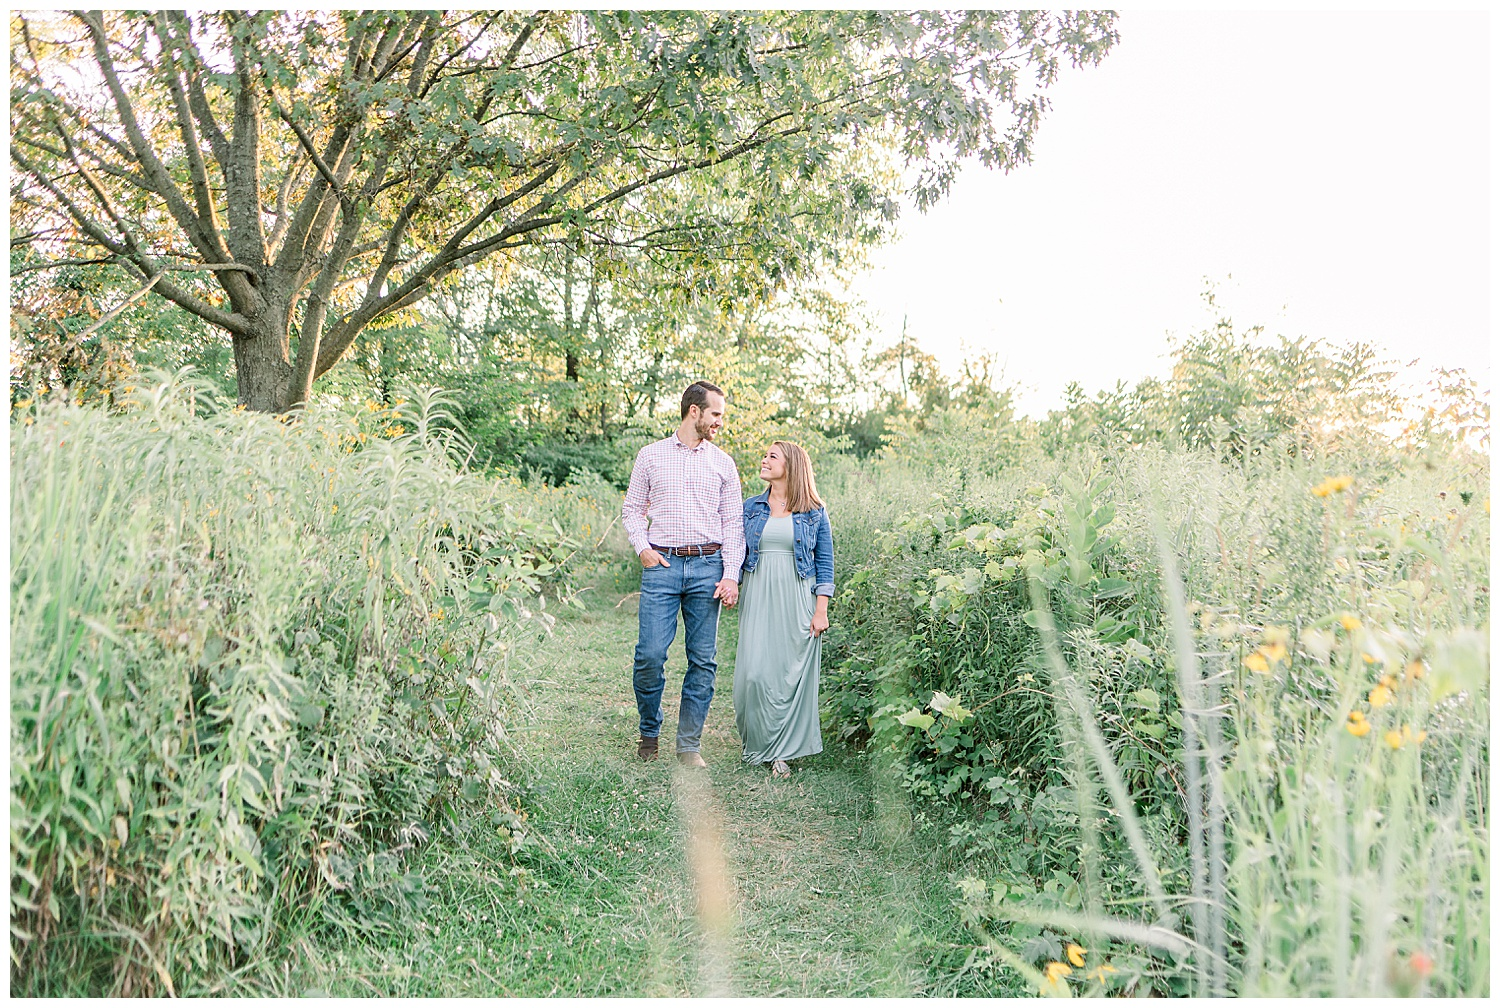 Cox_Arboretum_Anniversary_Session_Miamisburg_Ohio_Cassandra_Janina_Photography_Ohio_Wedding_Photographer_0276.jpg